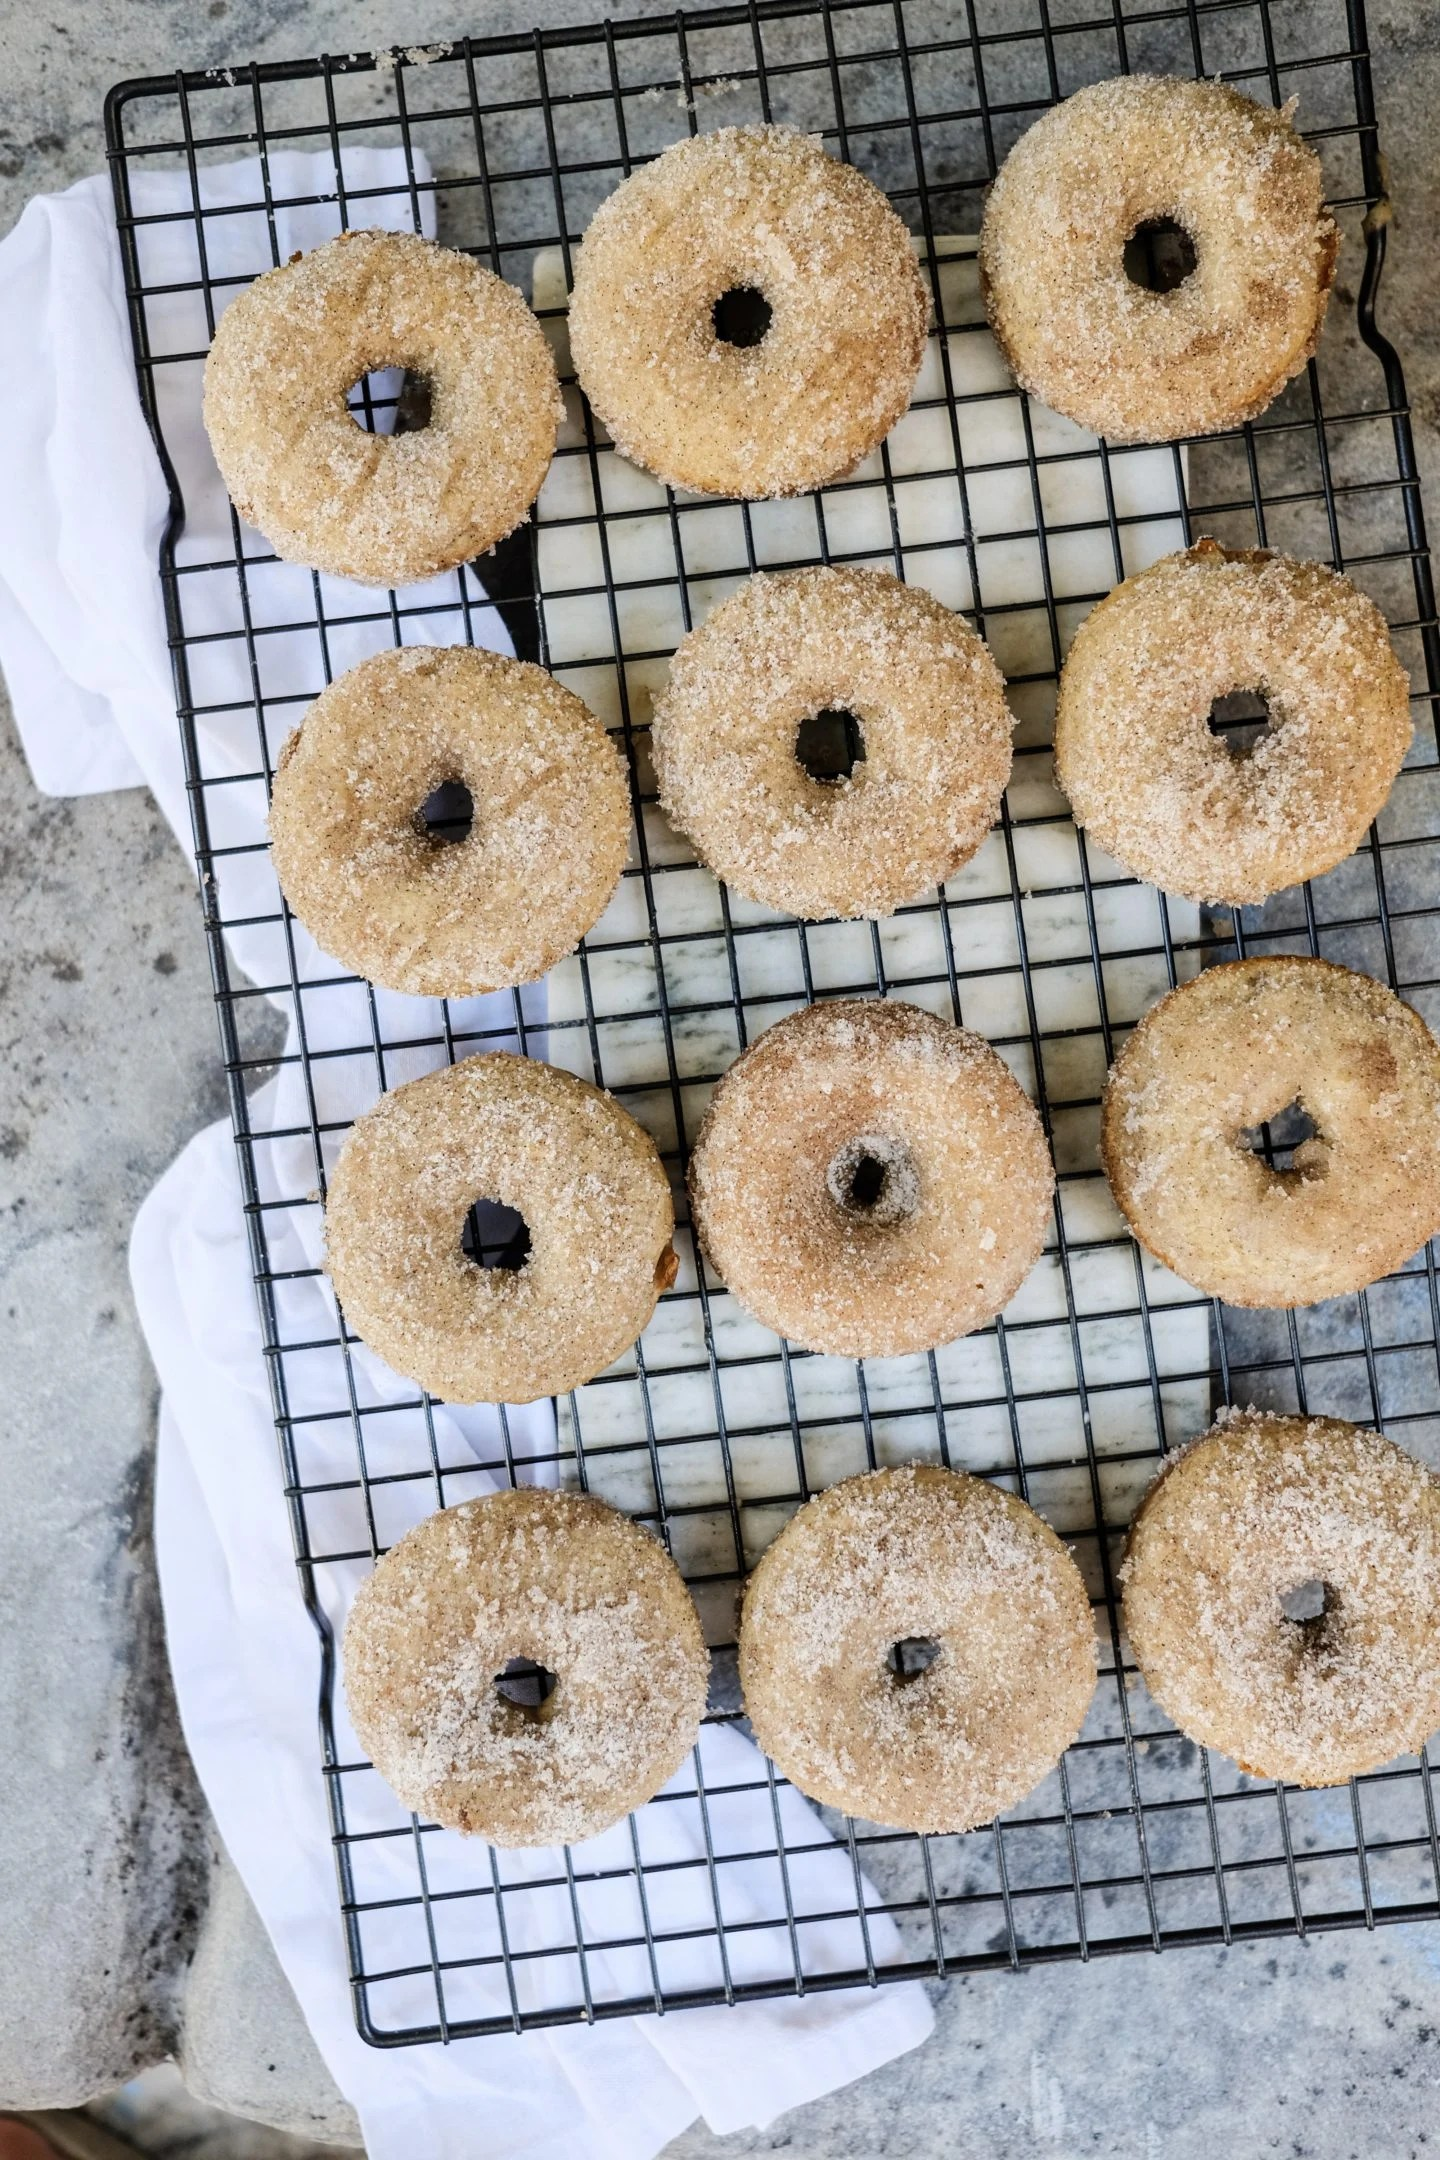 Lifestyle Blogger shares her recipe for Apple Cider Cinnamon Sugar Donuts.